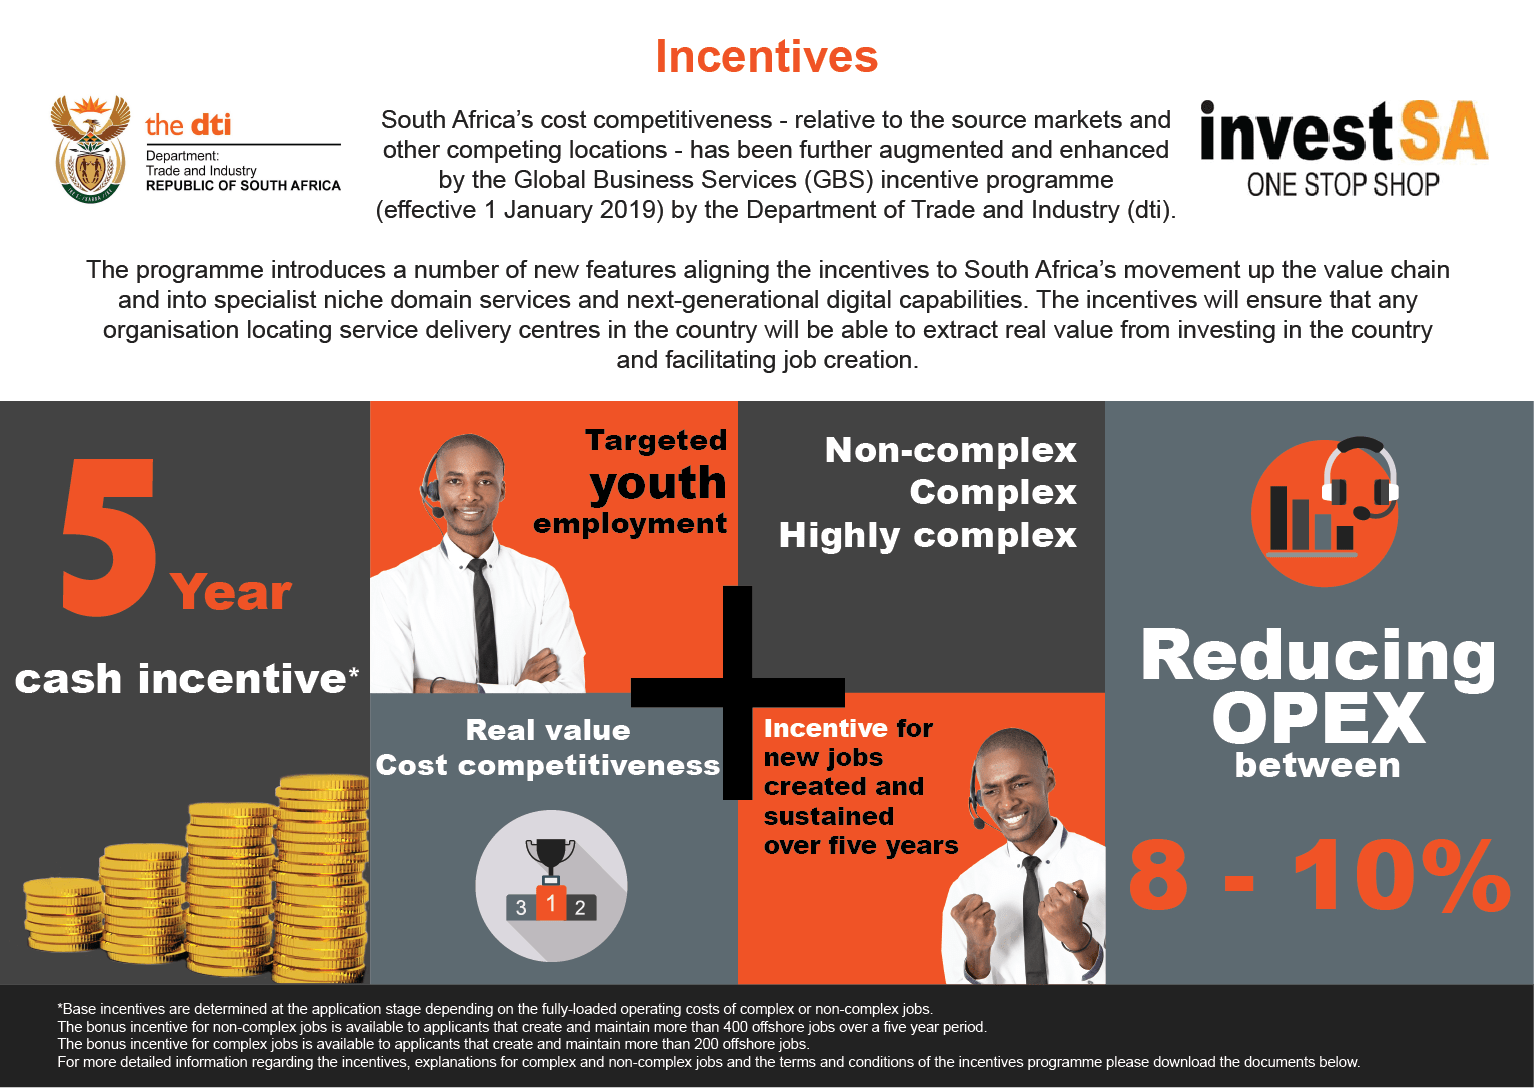 BPESA Incentives Infographic07